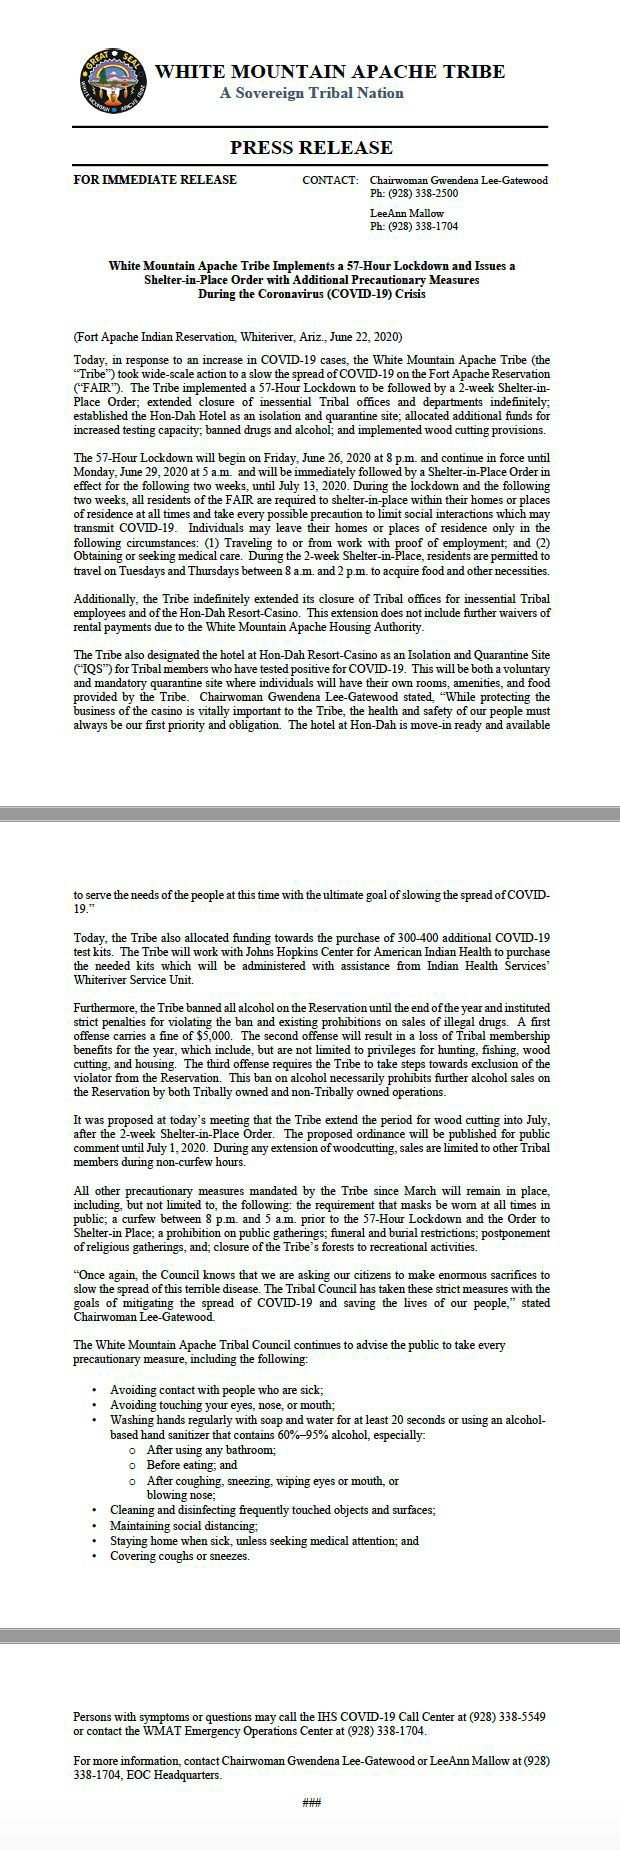 WMAT press release issued by Chairwoman Gwendena Lee-Gatewood on 6/22/20